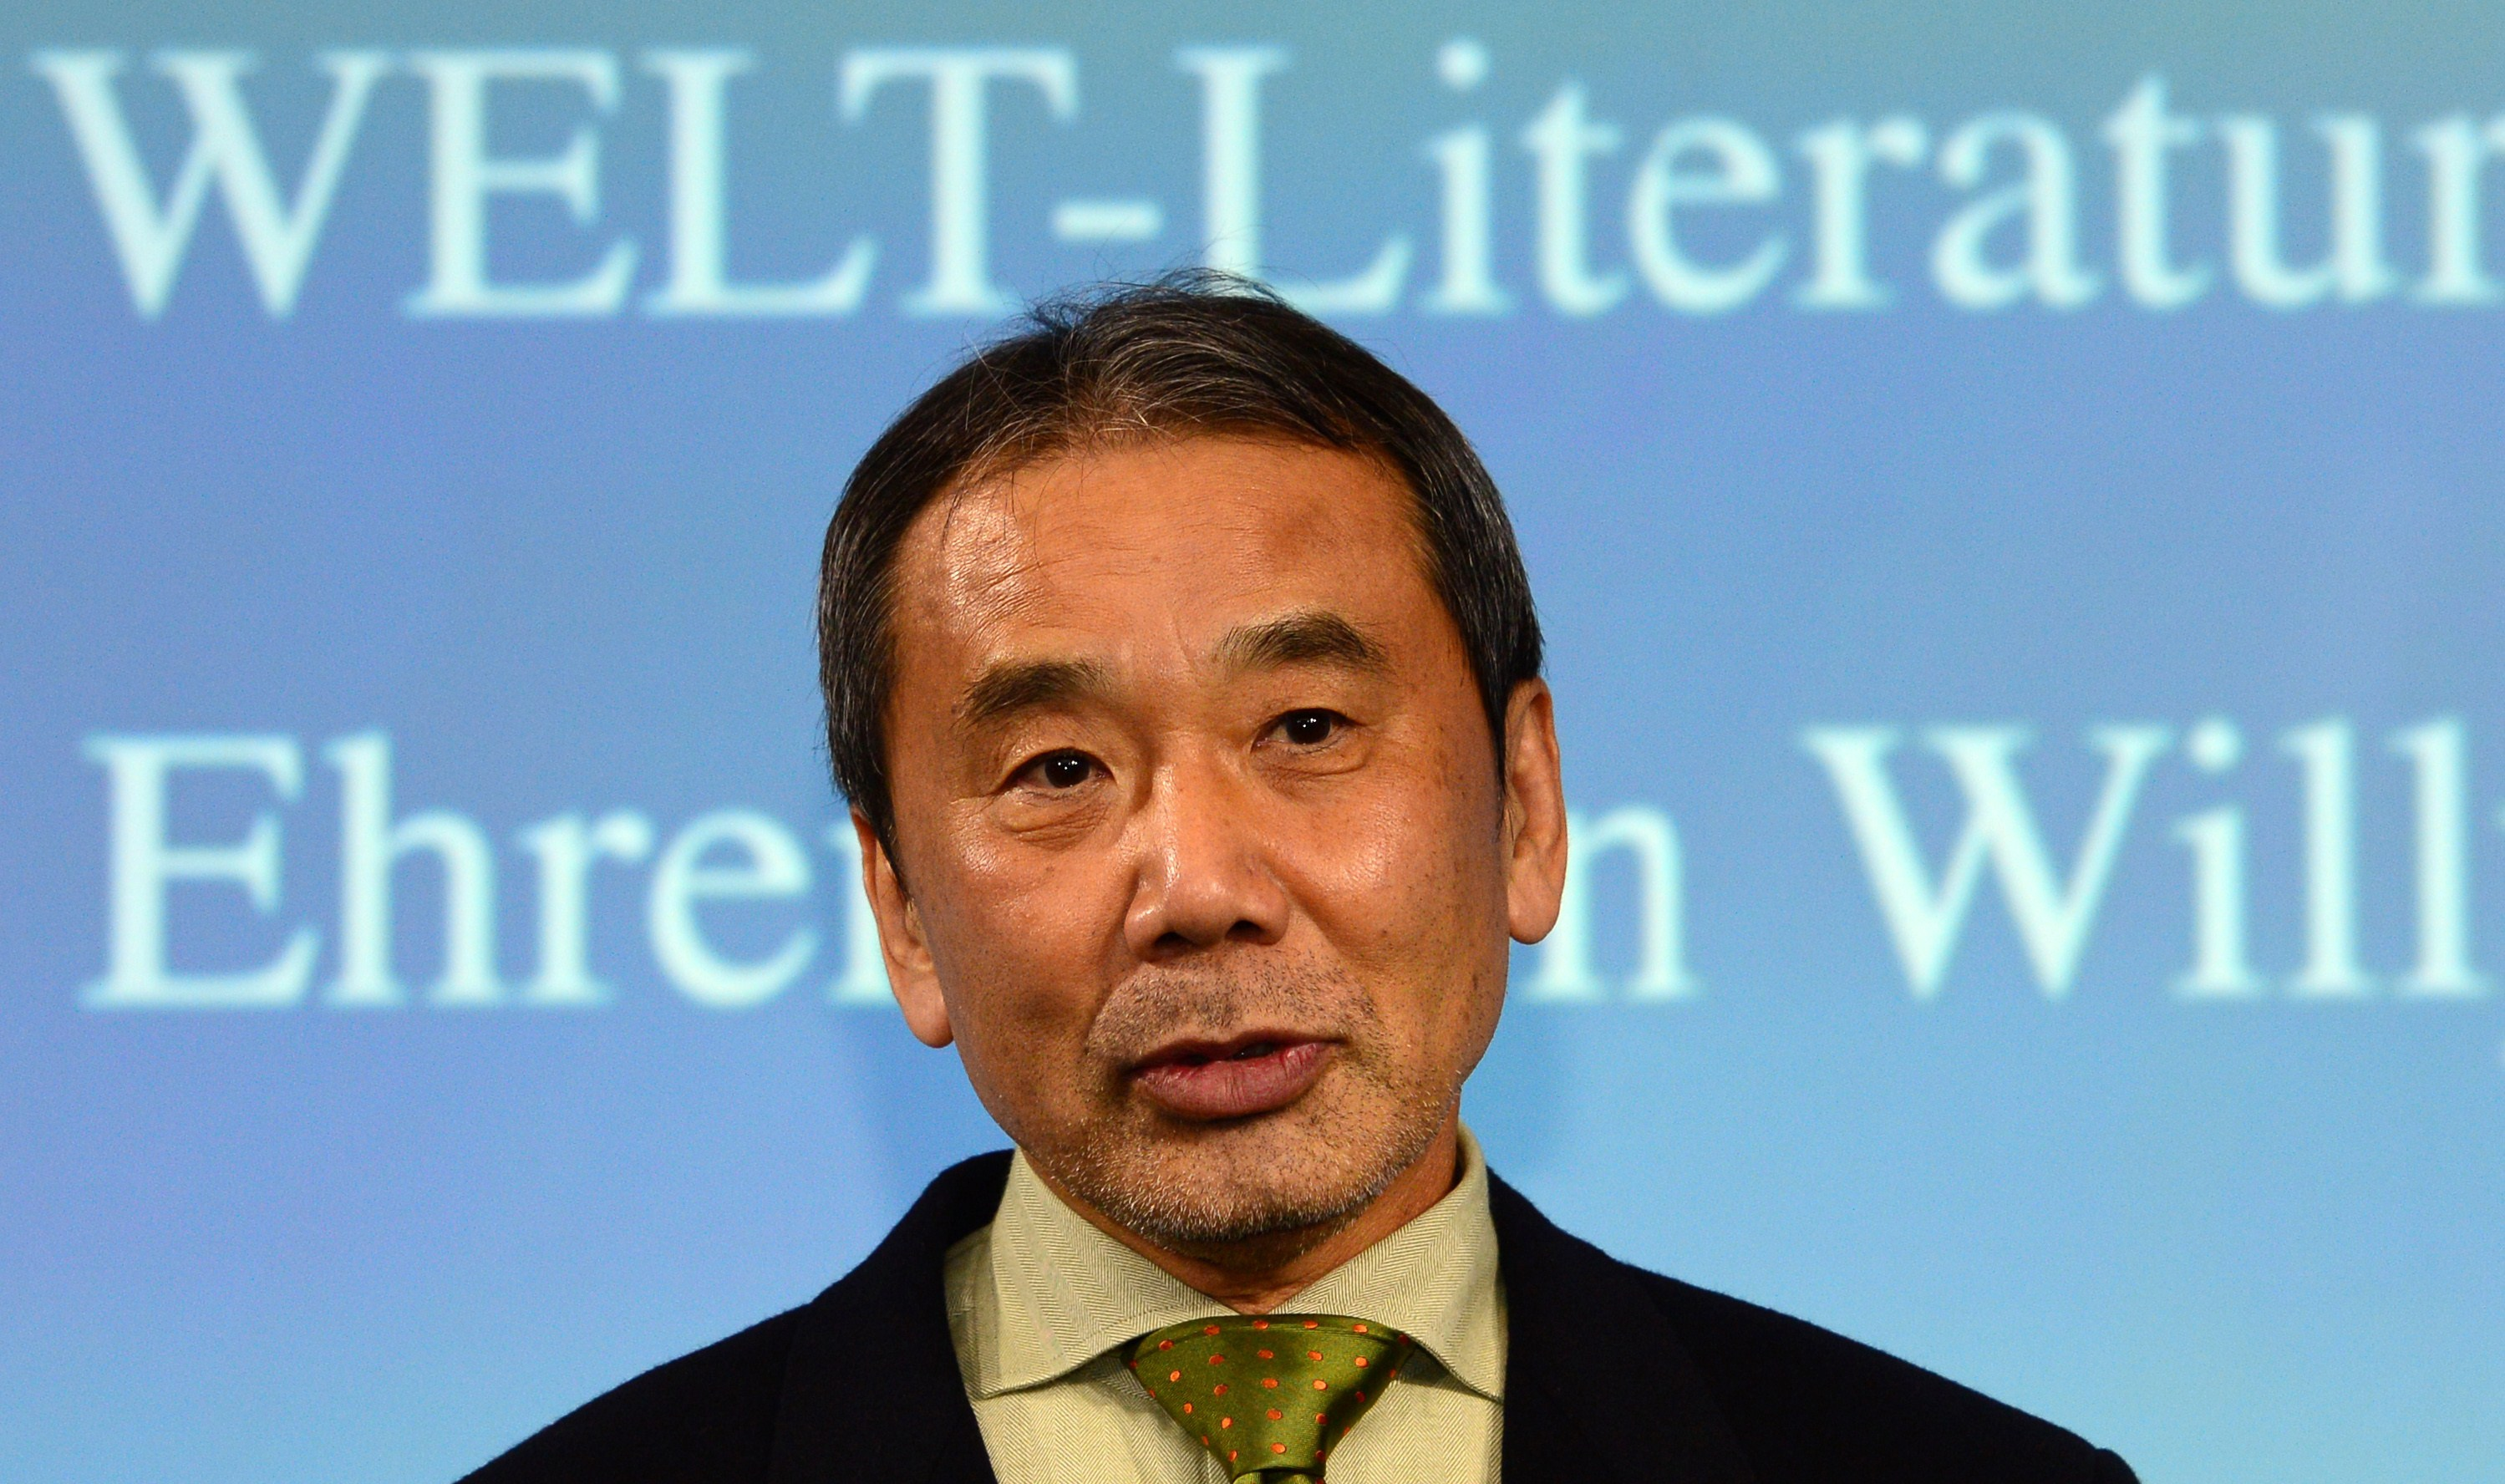 Japanese writer Haruki Murakami poses for photographers prior to an award ceremony for the Welt Literature Prize bestowed by the German daily Die Welt, in Berlin on Nov. 7, 2014